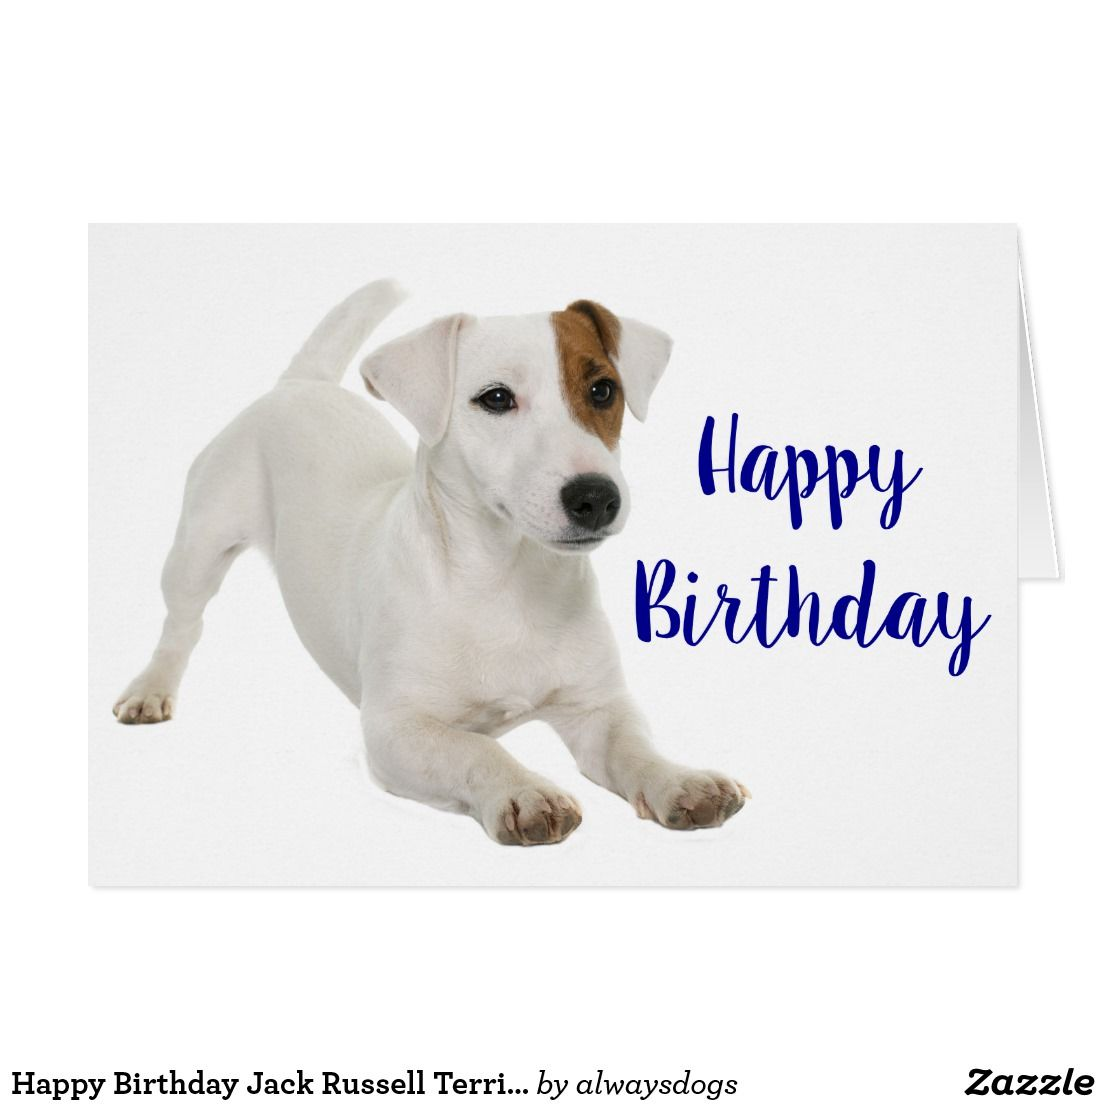 Happy Birthday Jack Russell Terrier Puppy Dog Card Zazzle Com